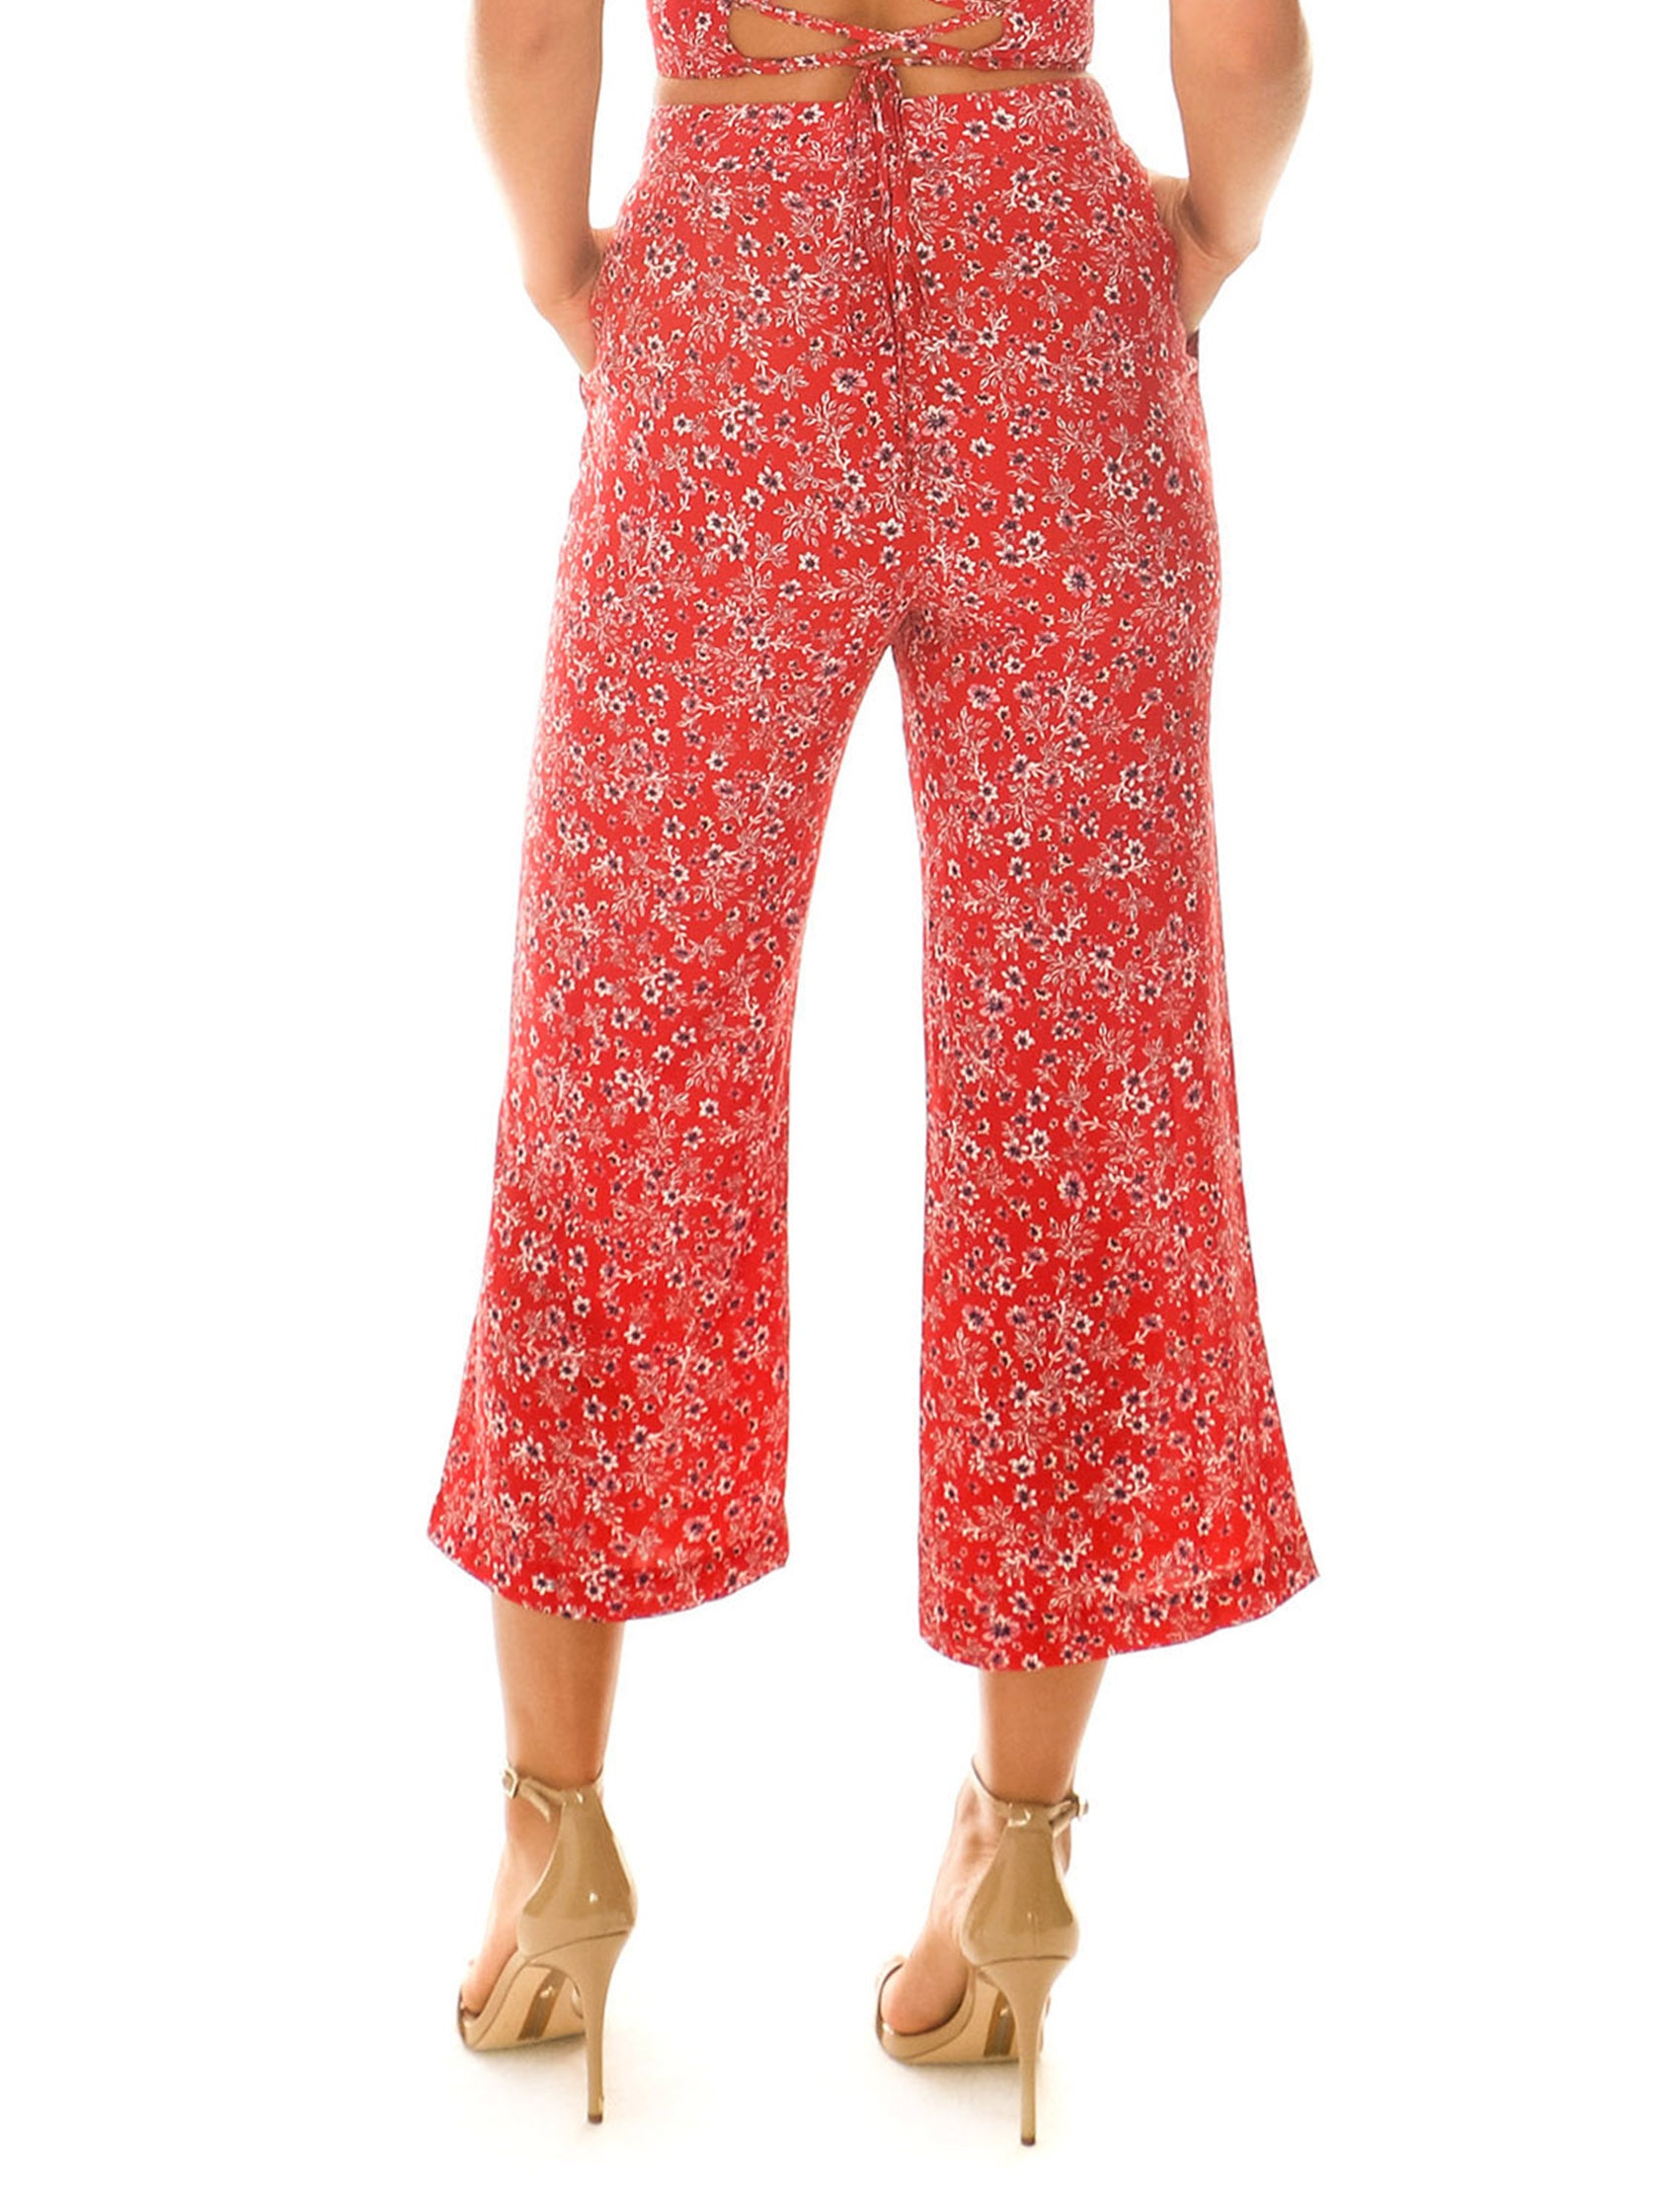 Women outfit in a pants rental from Blue Life called Camilla Pant